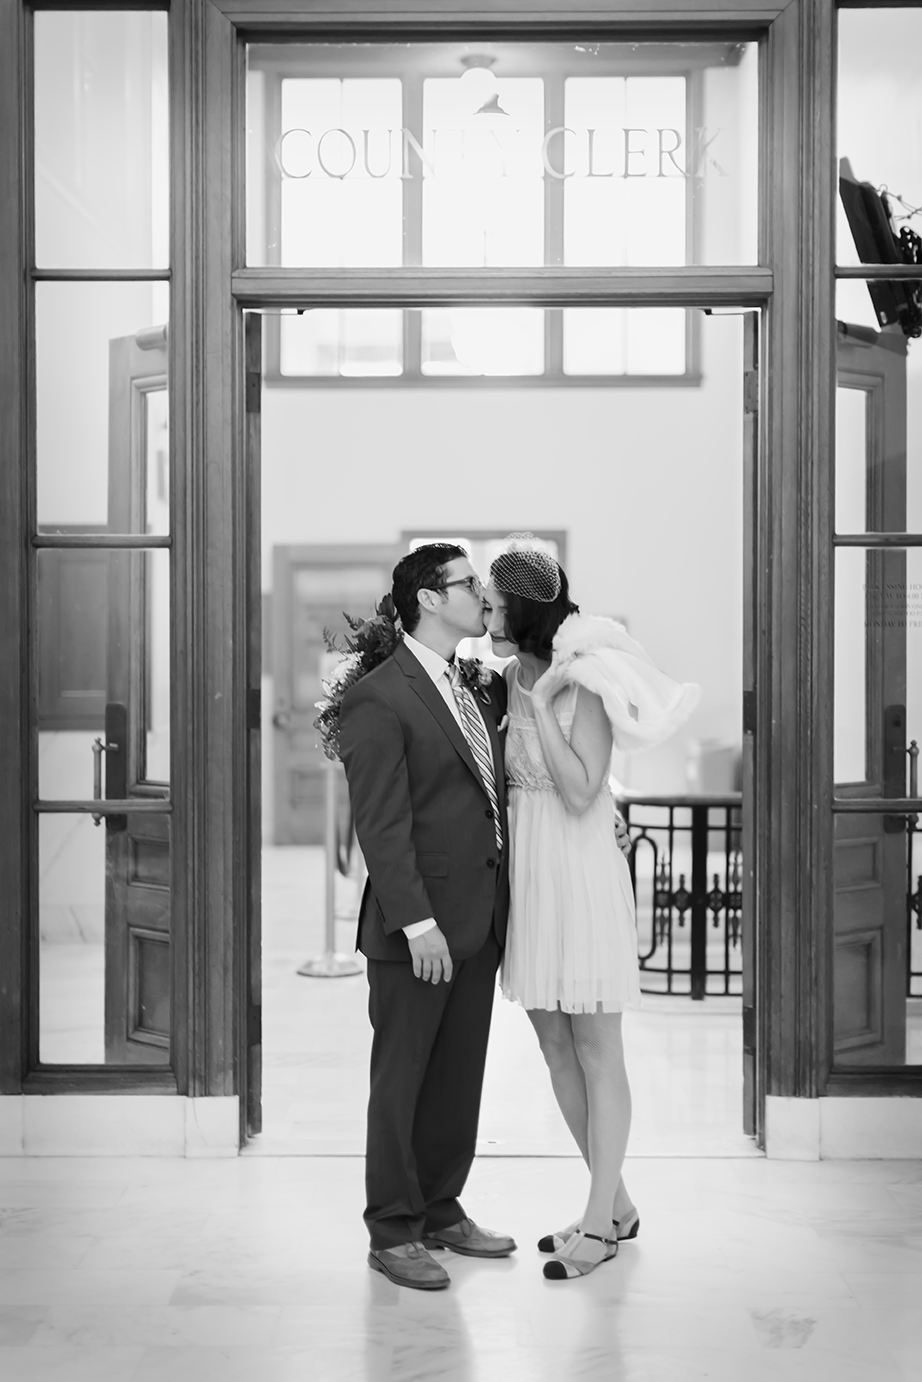 From my own City Hall wedding, thank you  Catherine Nguyen  for being our City Hall photographer! Also a big thanks to  Melisa Hall  for my hair and make-up.